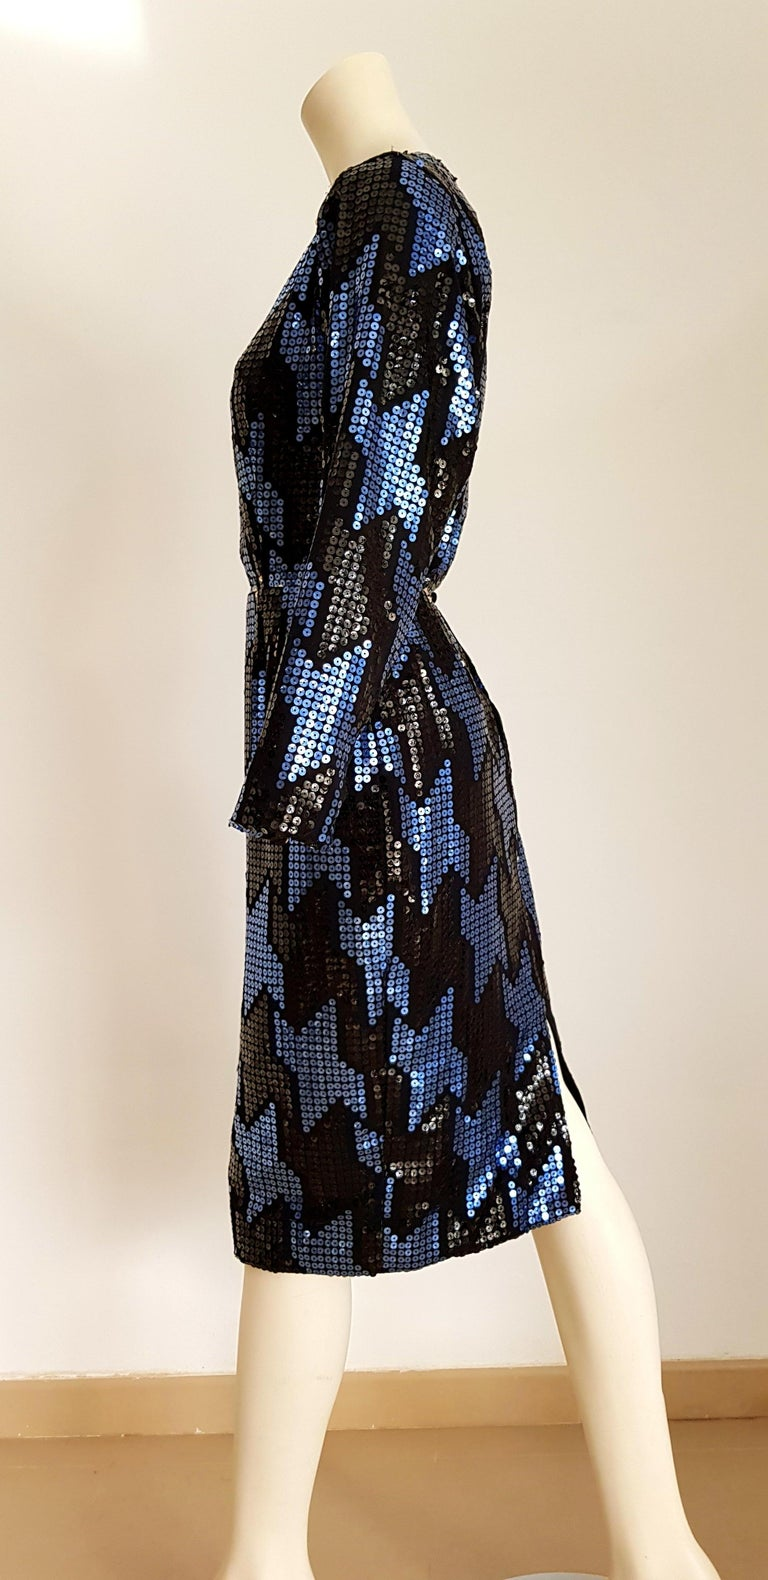 Christian DIOR Haute Couture blue and black sequins couvered, organza silk - Unworn, new  SIZE: equivalent to about Small / Medium, please review approx measurements as follows in cm: lenght 106, chest underarm to underarm 49, bust circumference 88,